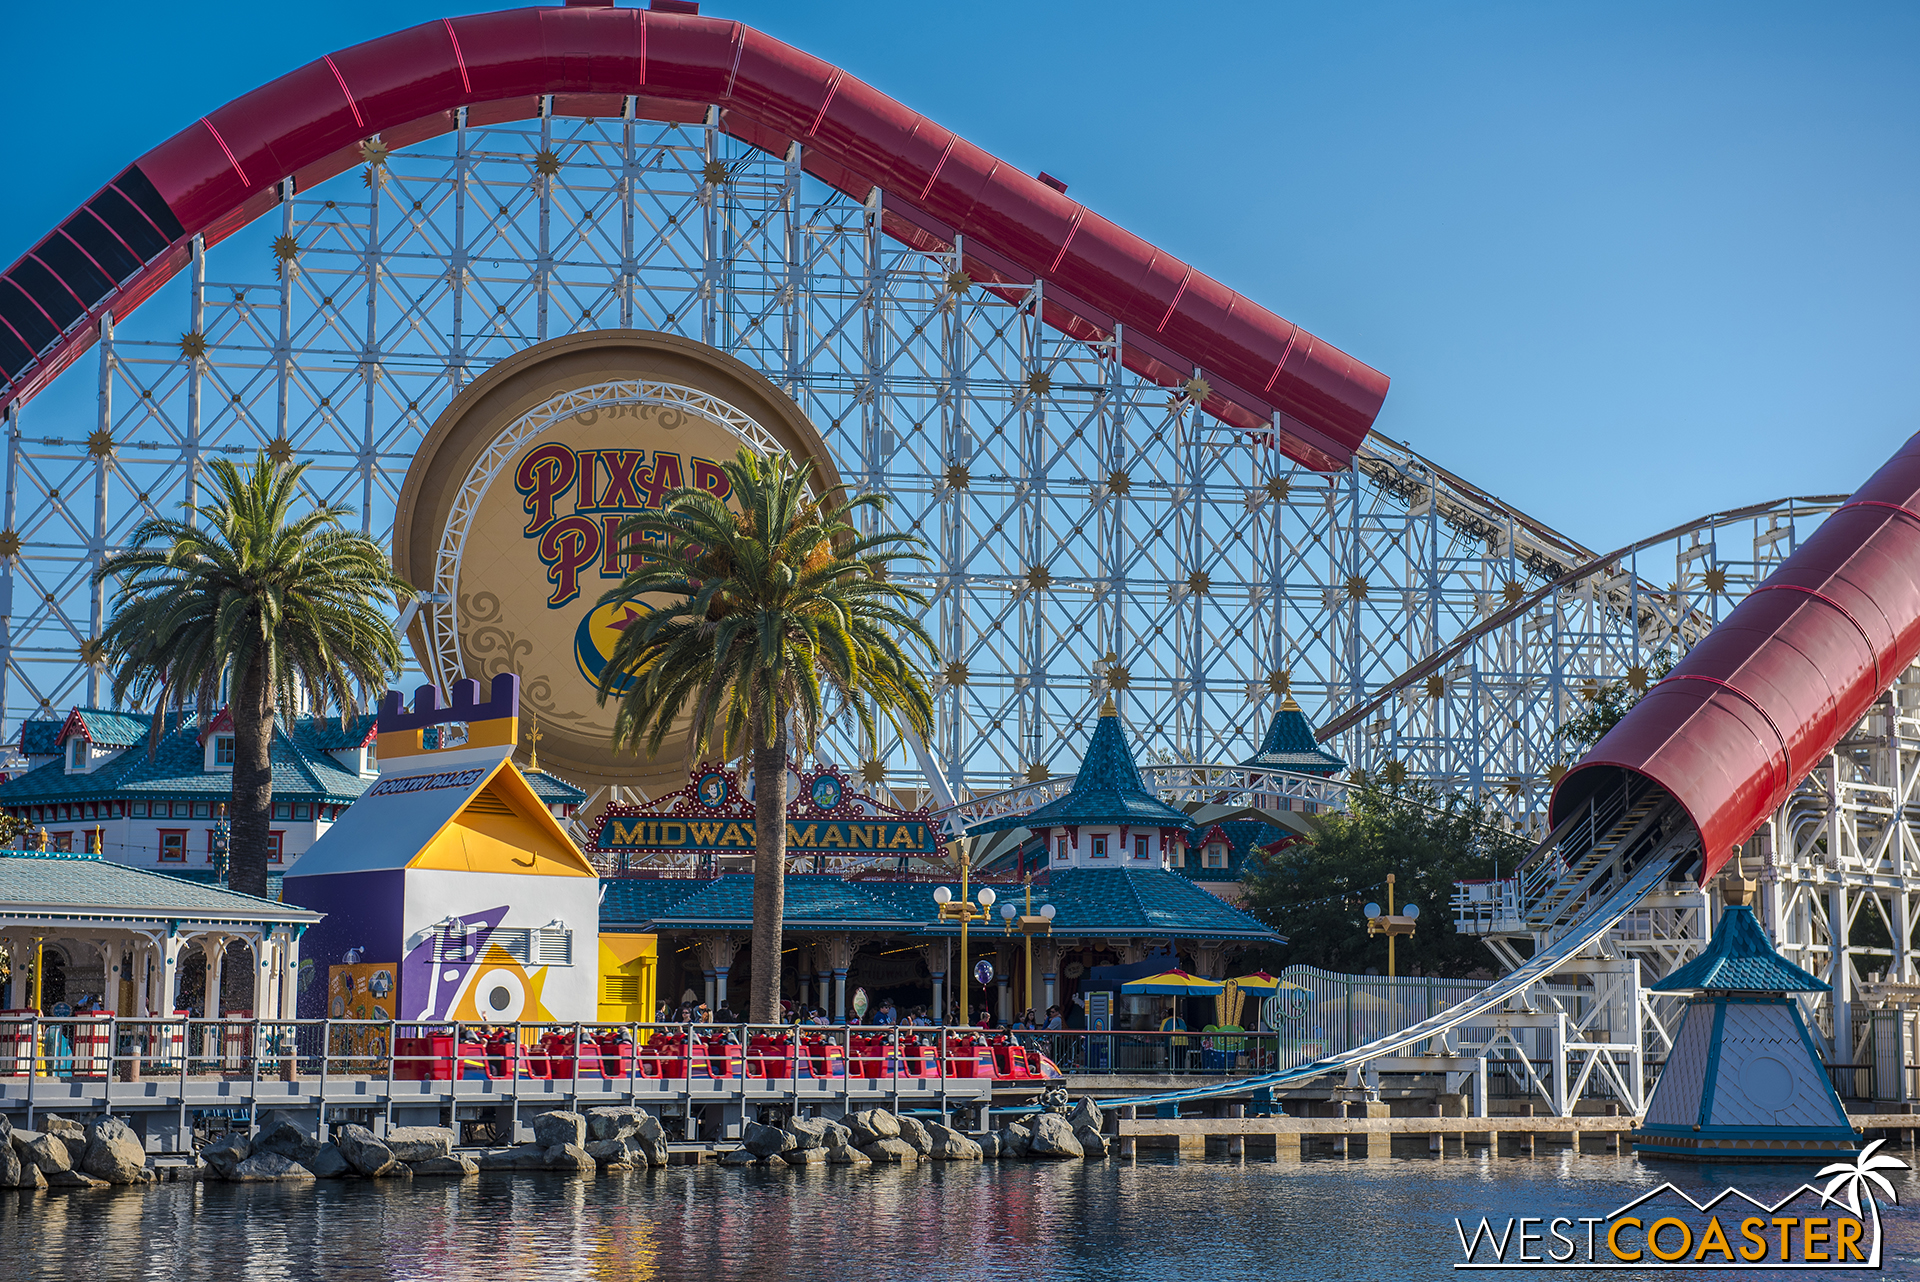 Poultry Palace is most definitely an eyesore along the Pixar Pier waterfront.